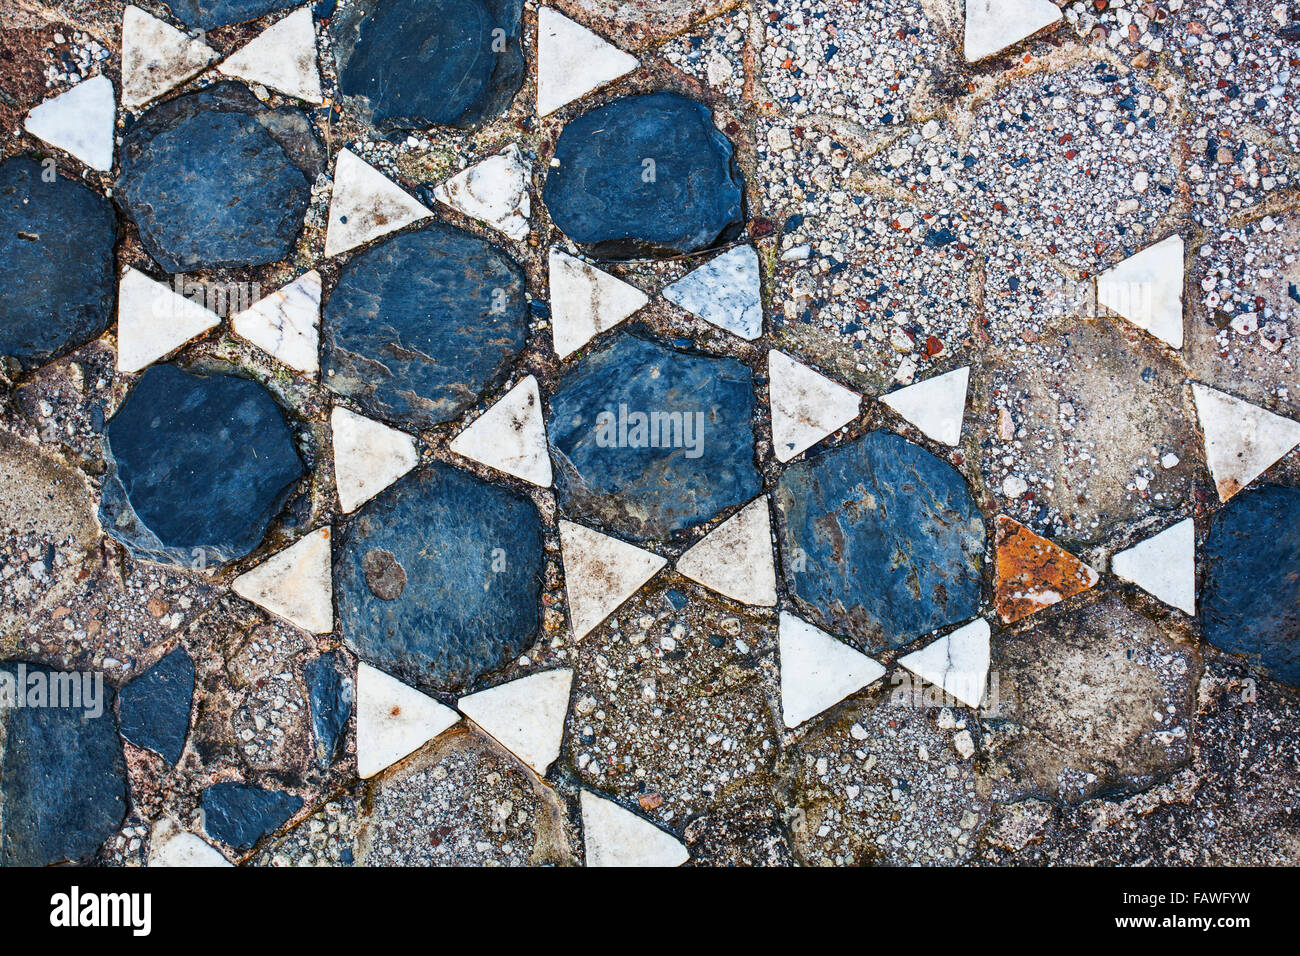 Broken Tile Stock Photos & Broken Tile Stock Images - Alamy